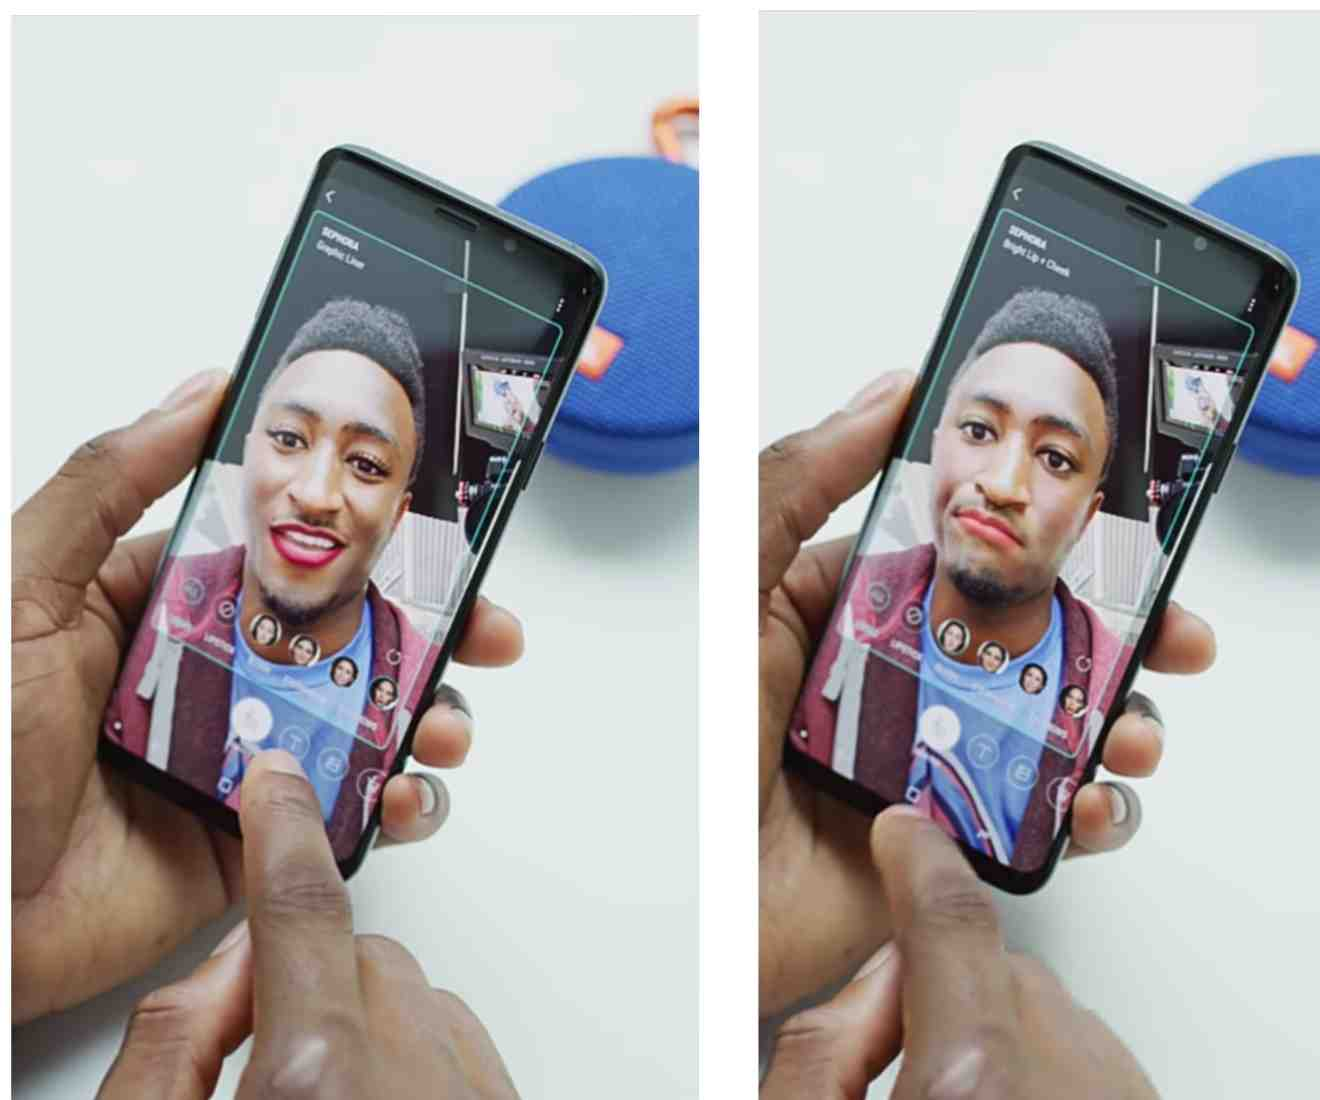 Bixby Makeup On the Samsung Galaxy S9 and S9 Plus smart phones